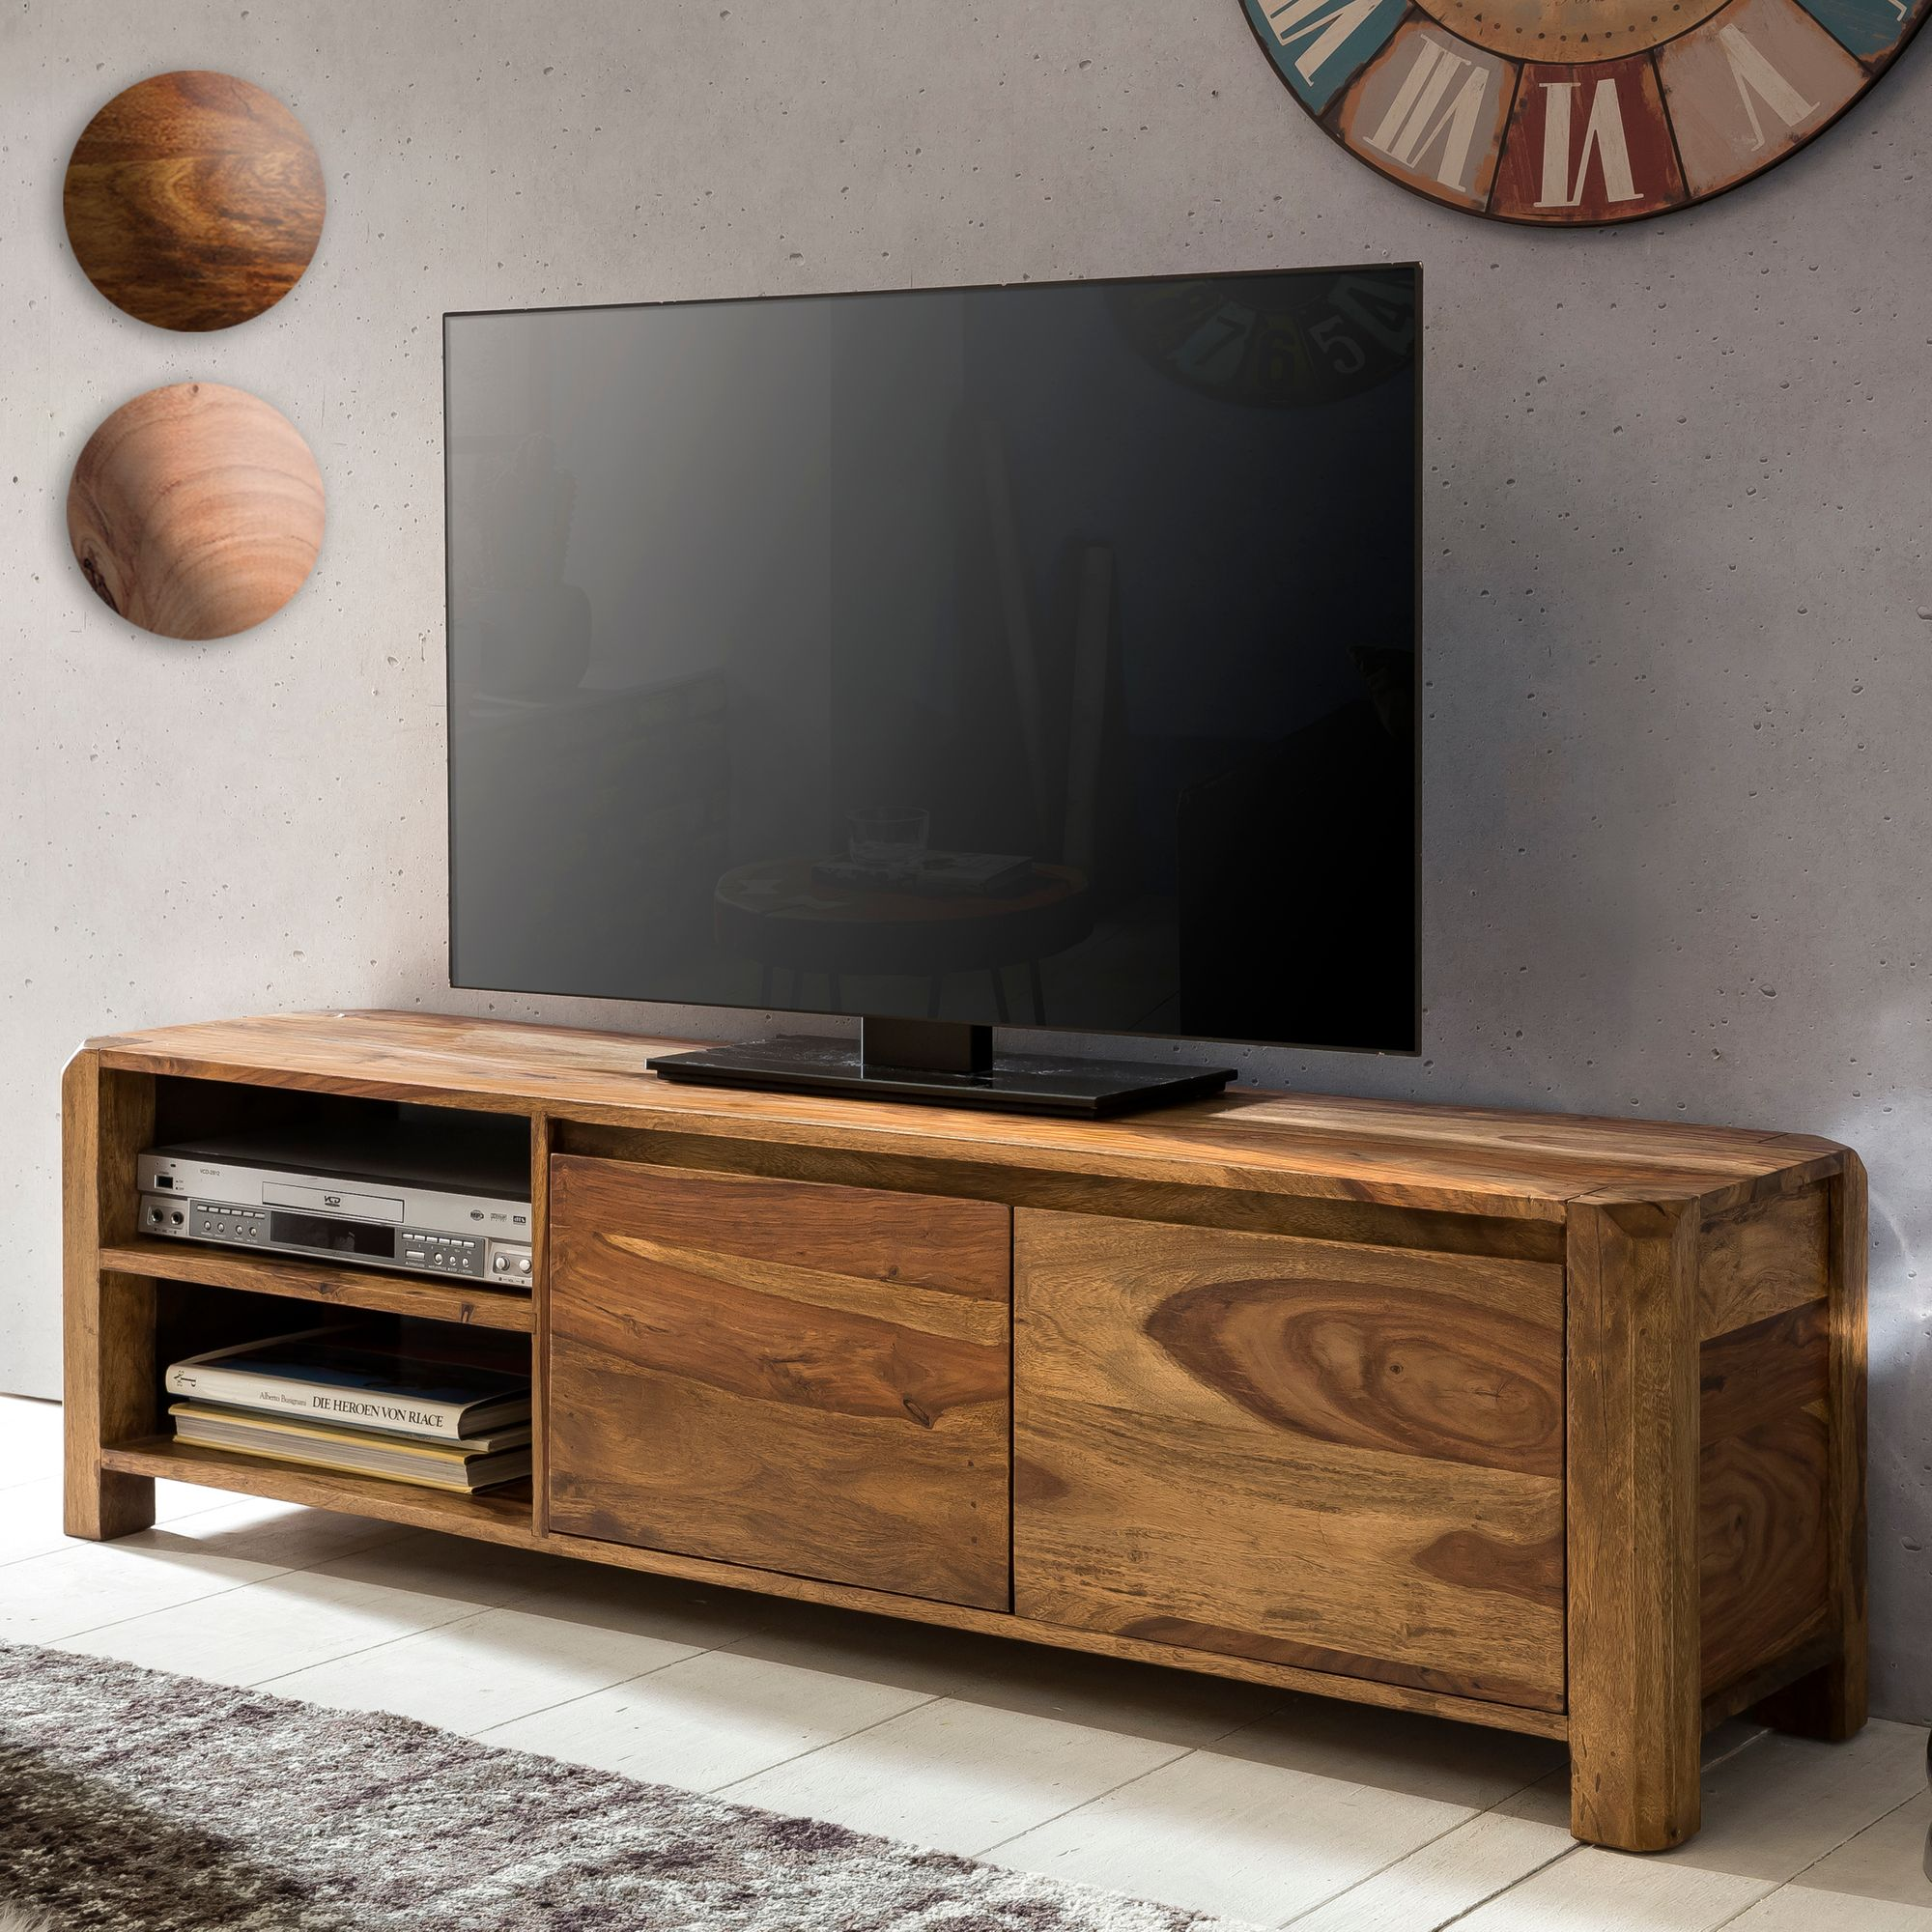 Finebuy Lowboard Massivholz Kommode 140 Cm Tv Board Ablage Facher